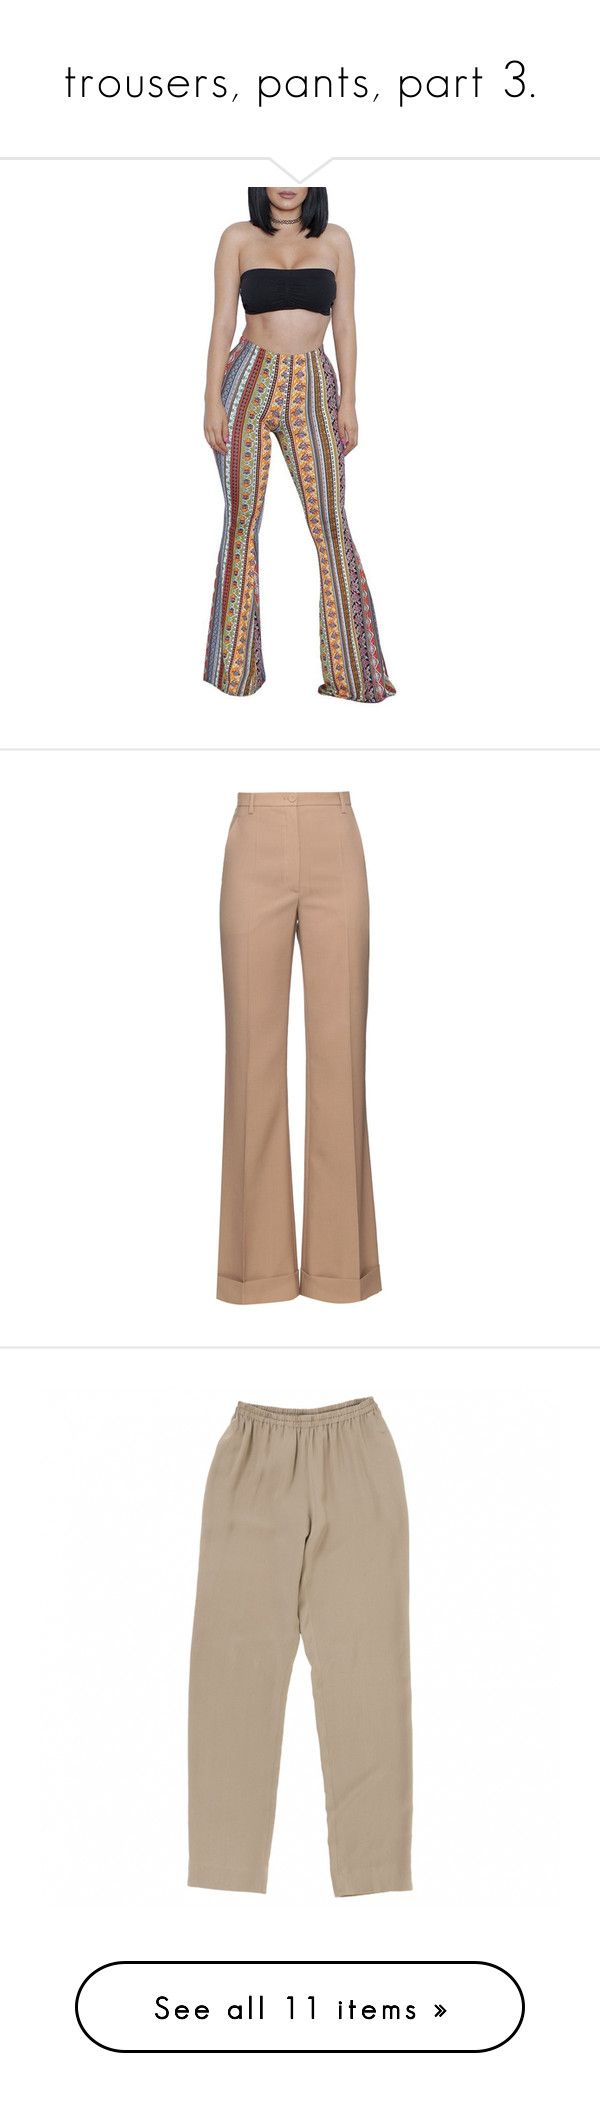 """trousers, pants, part 3."" by trillestqueen ❤ liked on Polyvore featuring bandeau bikini tops, bandeau tops, pants, trousers, bottoms, calças, pantaloni, dark beige, cuff pants and beige pants"